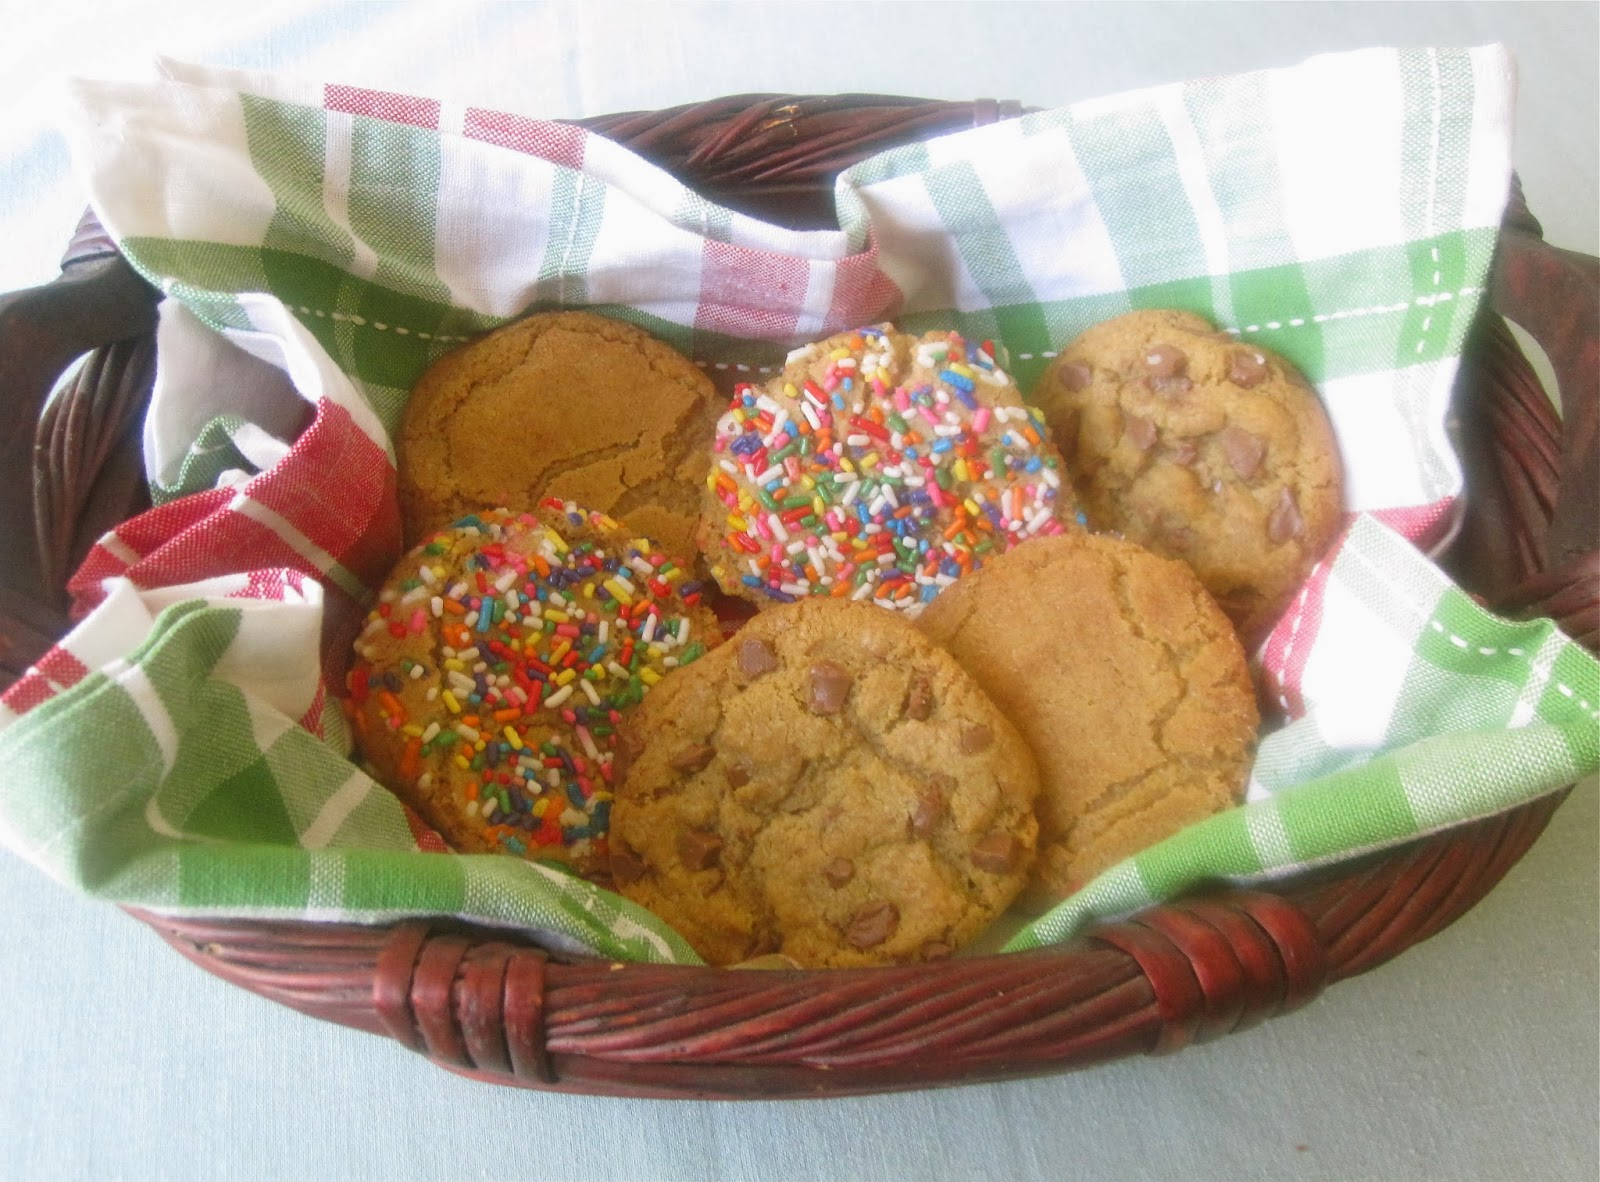 6-in-1 Cookie Variety Pack Recipe - 1 small-batch recipe, endless ...